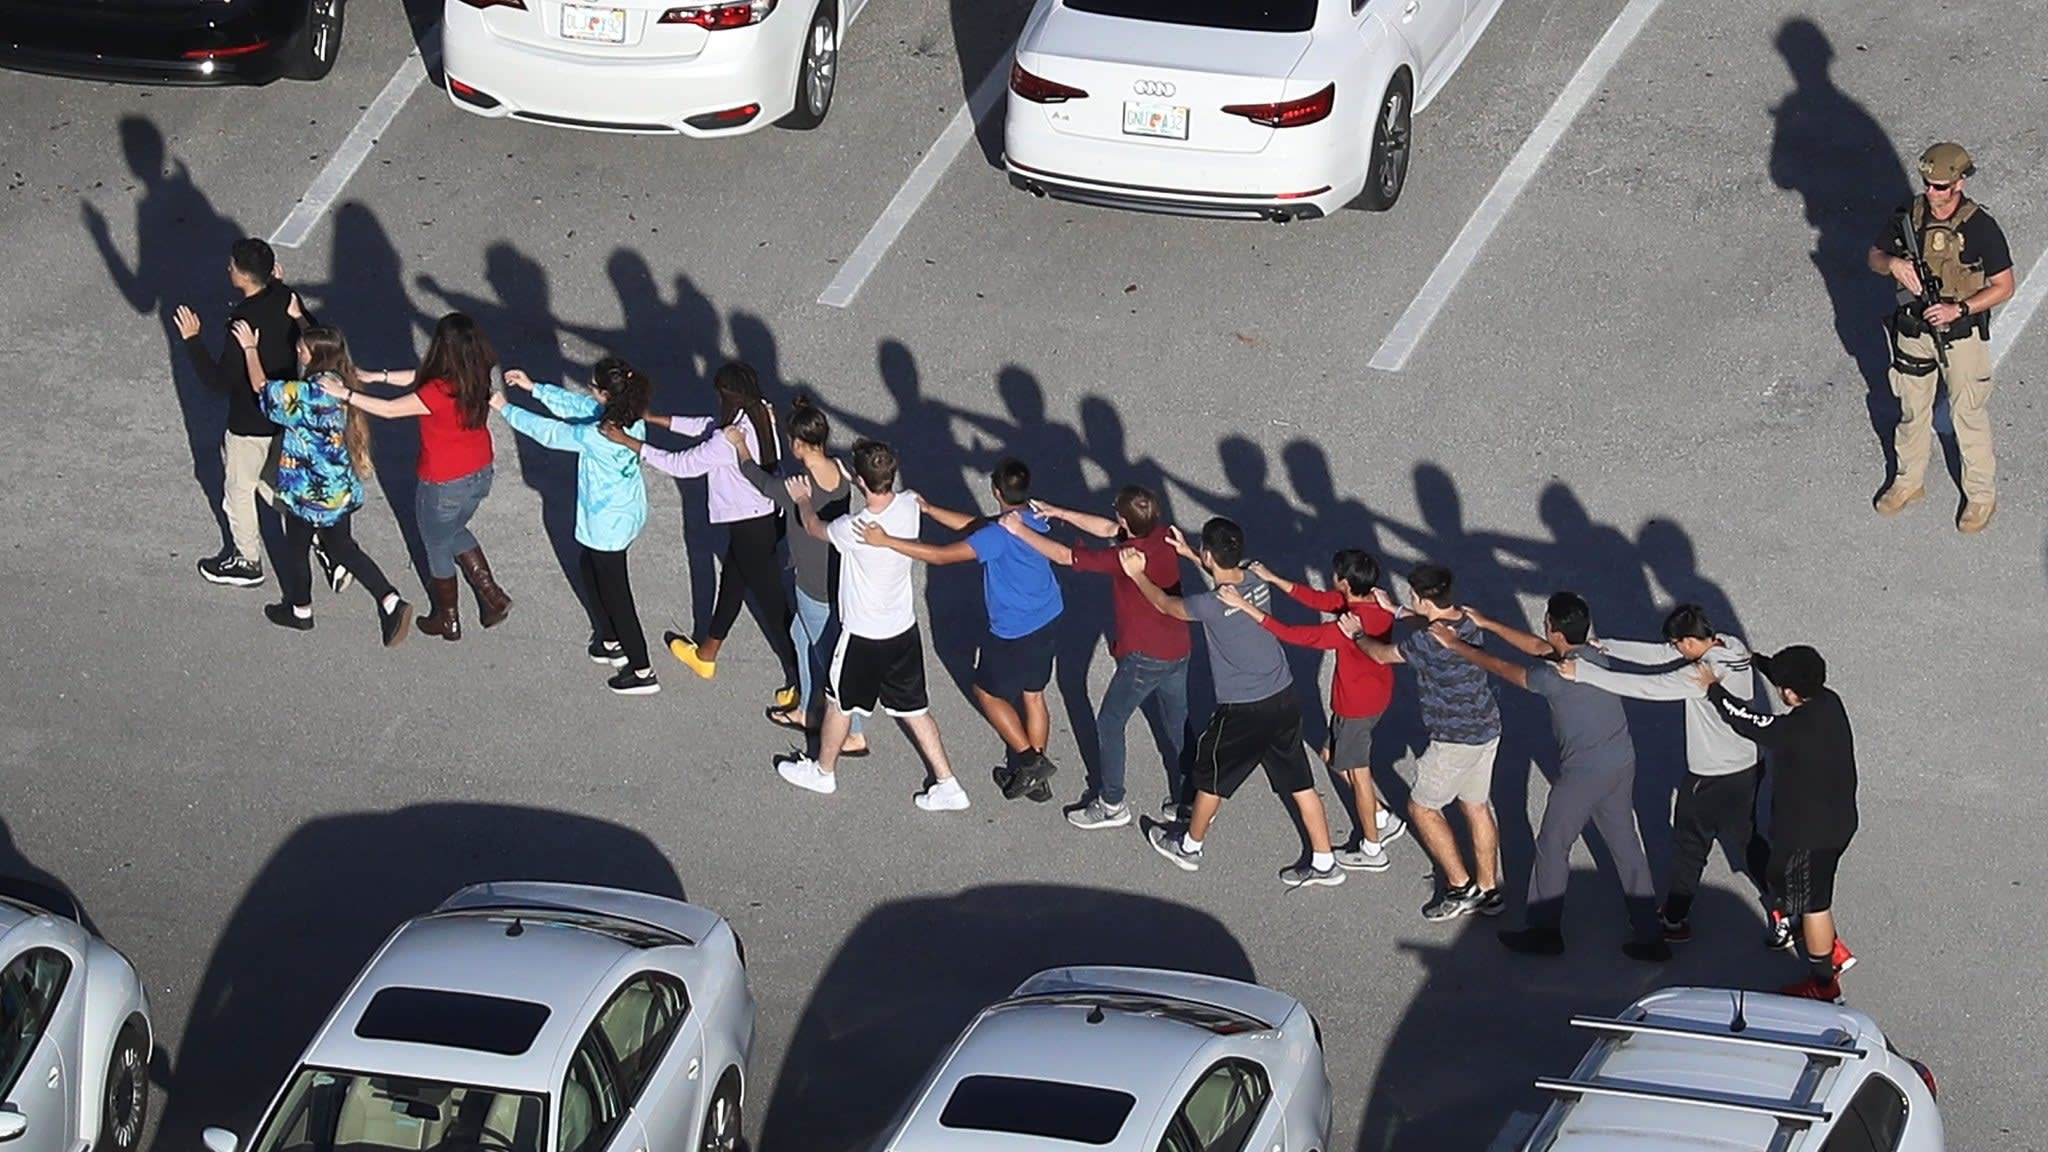 Florida school shooting leaves 17 dead